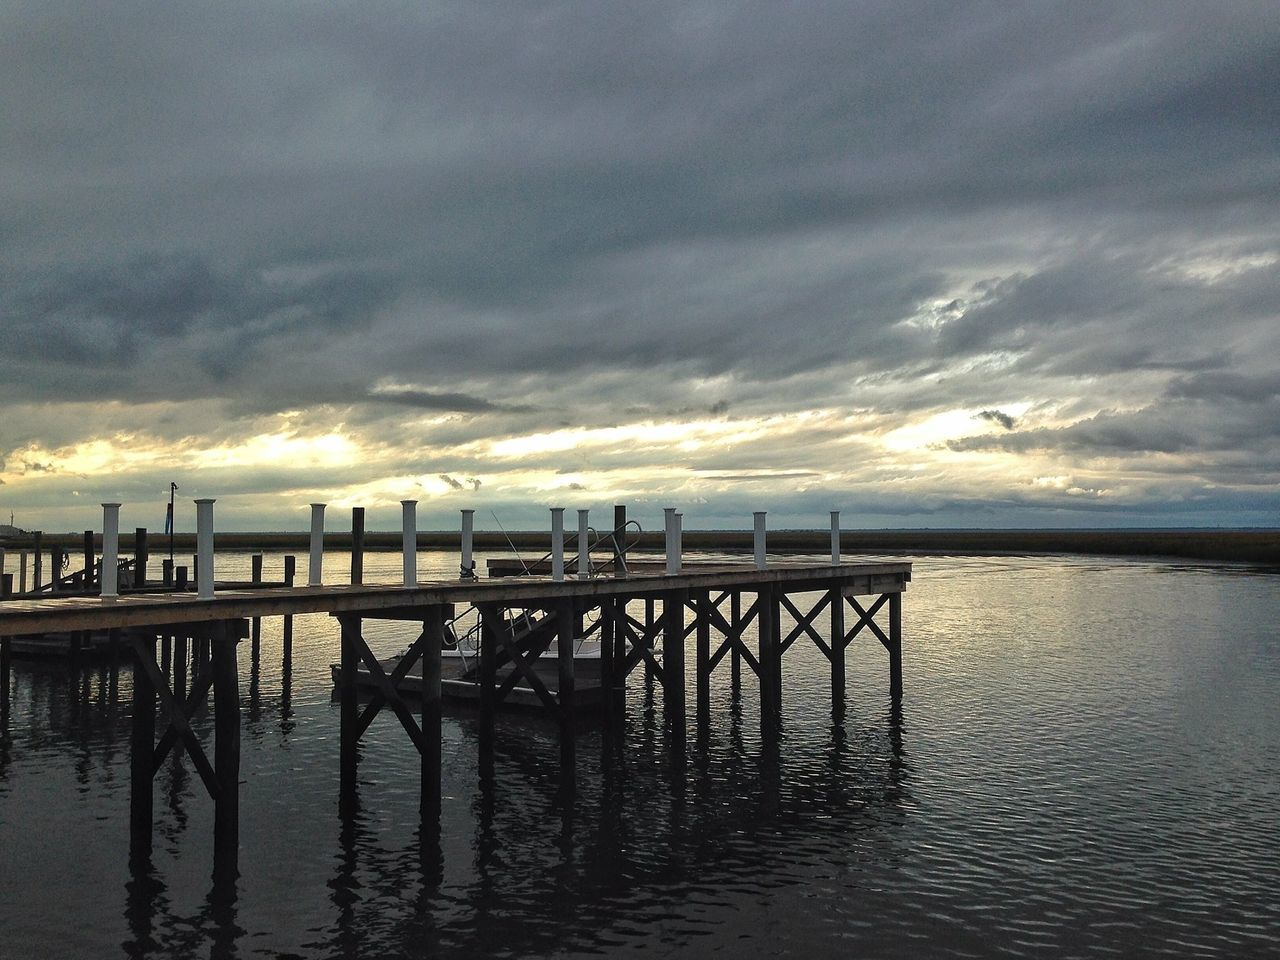 Pier Over River Against Cloudy Sky At Dusk